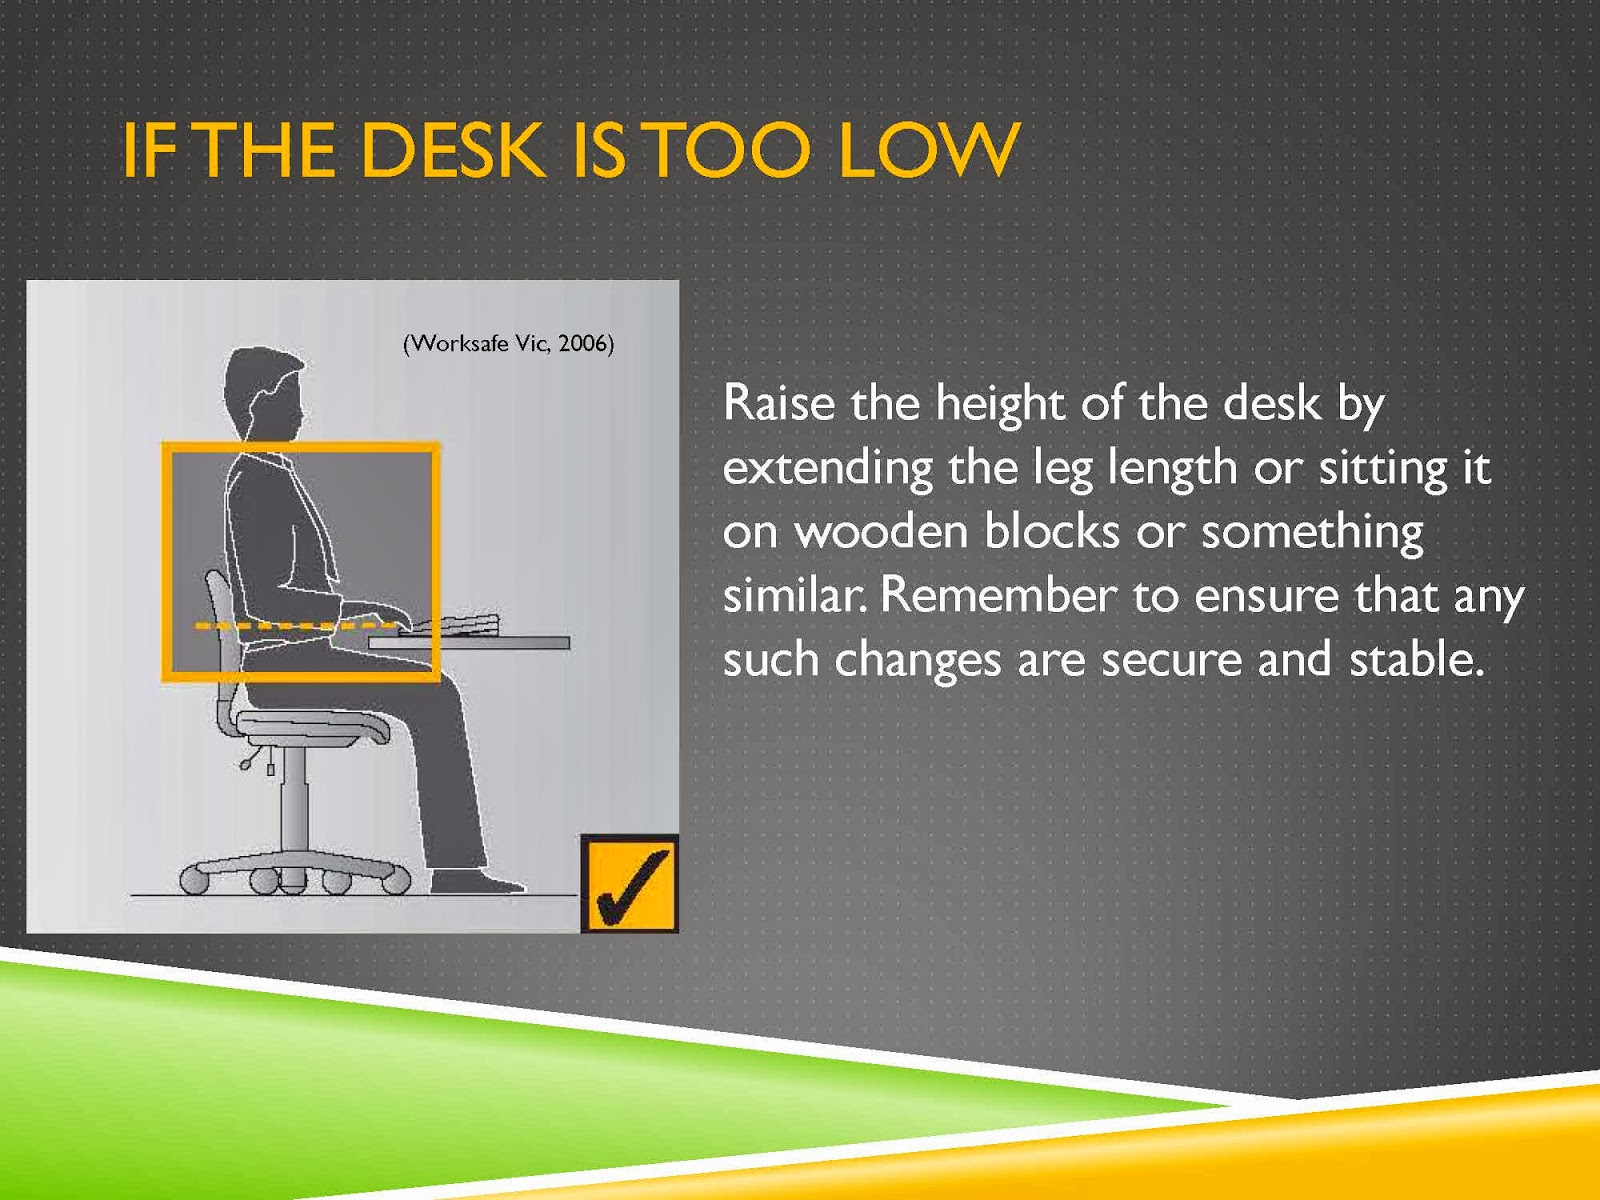 IF THE DESK IS TOO LOW